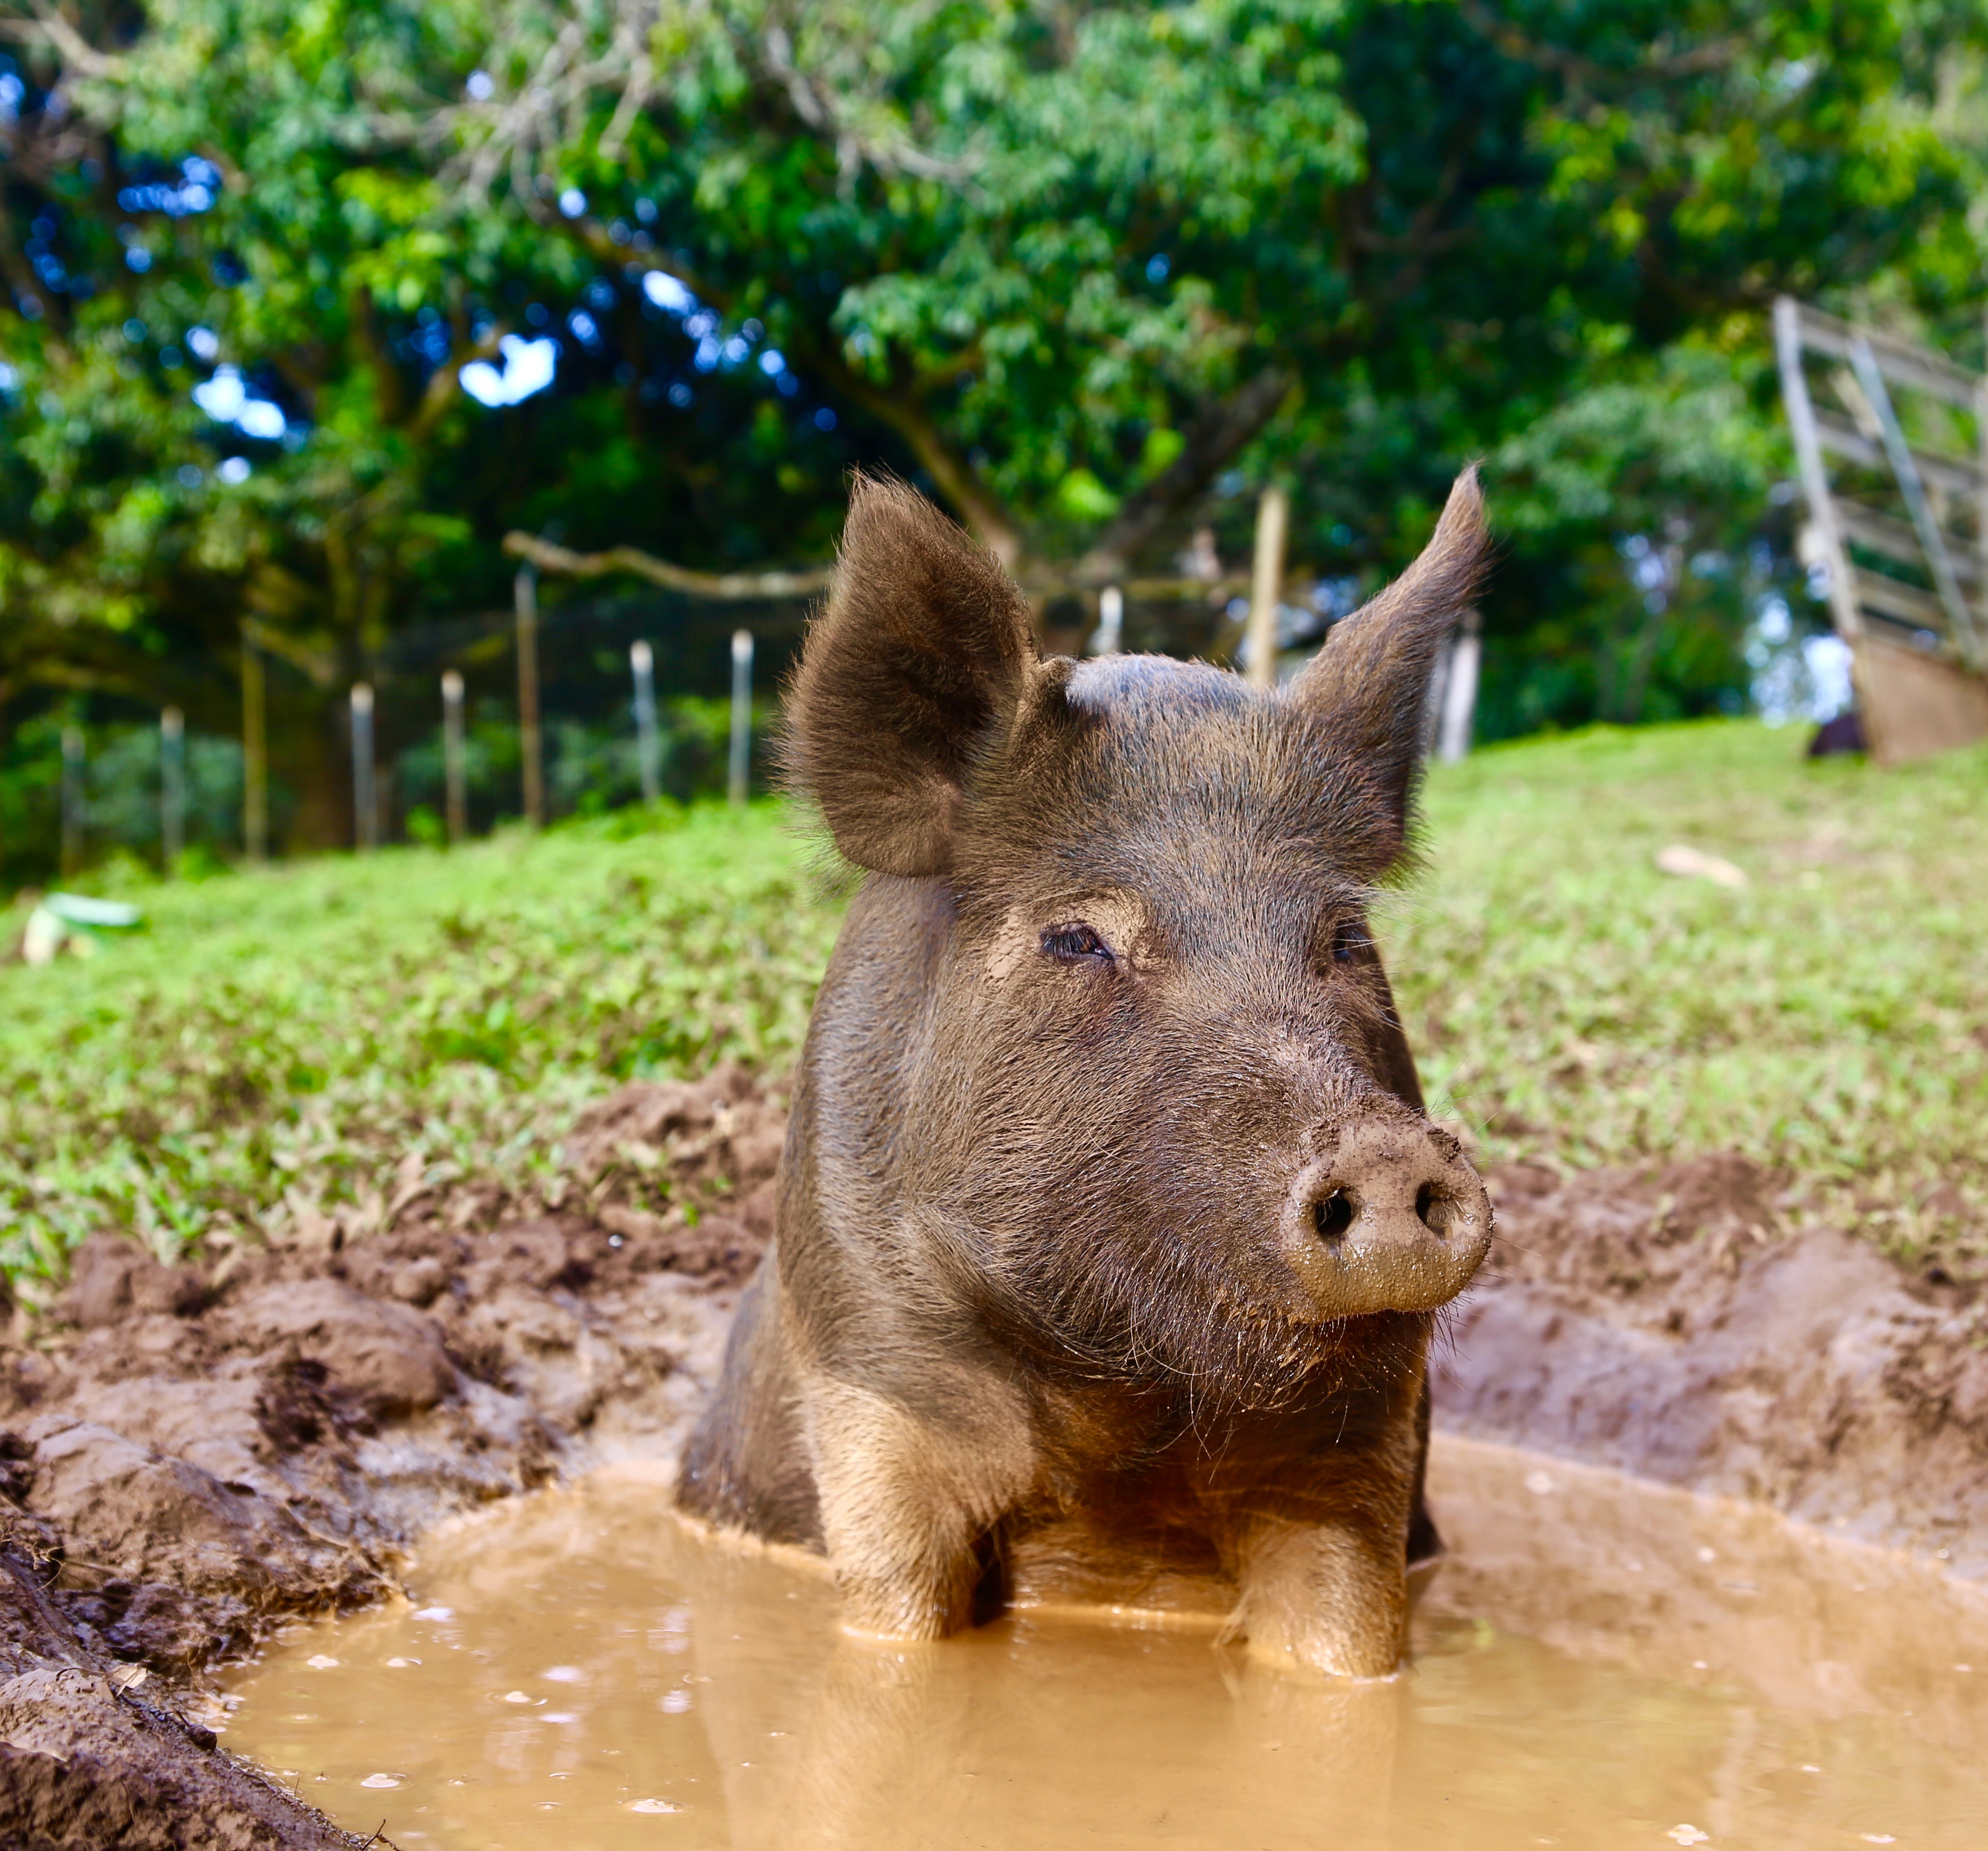 Tour the Sanctuary | Leilani Farm Sanctuary